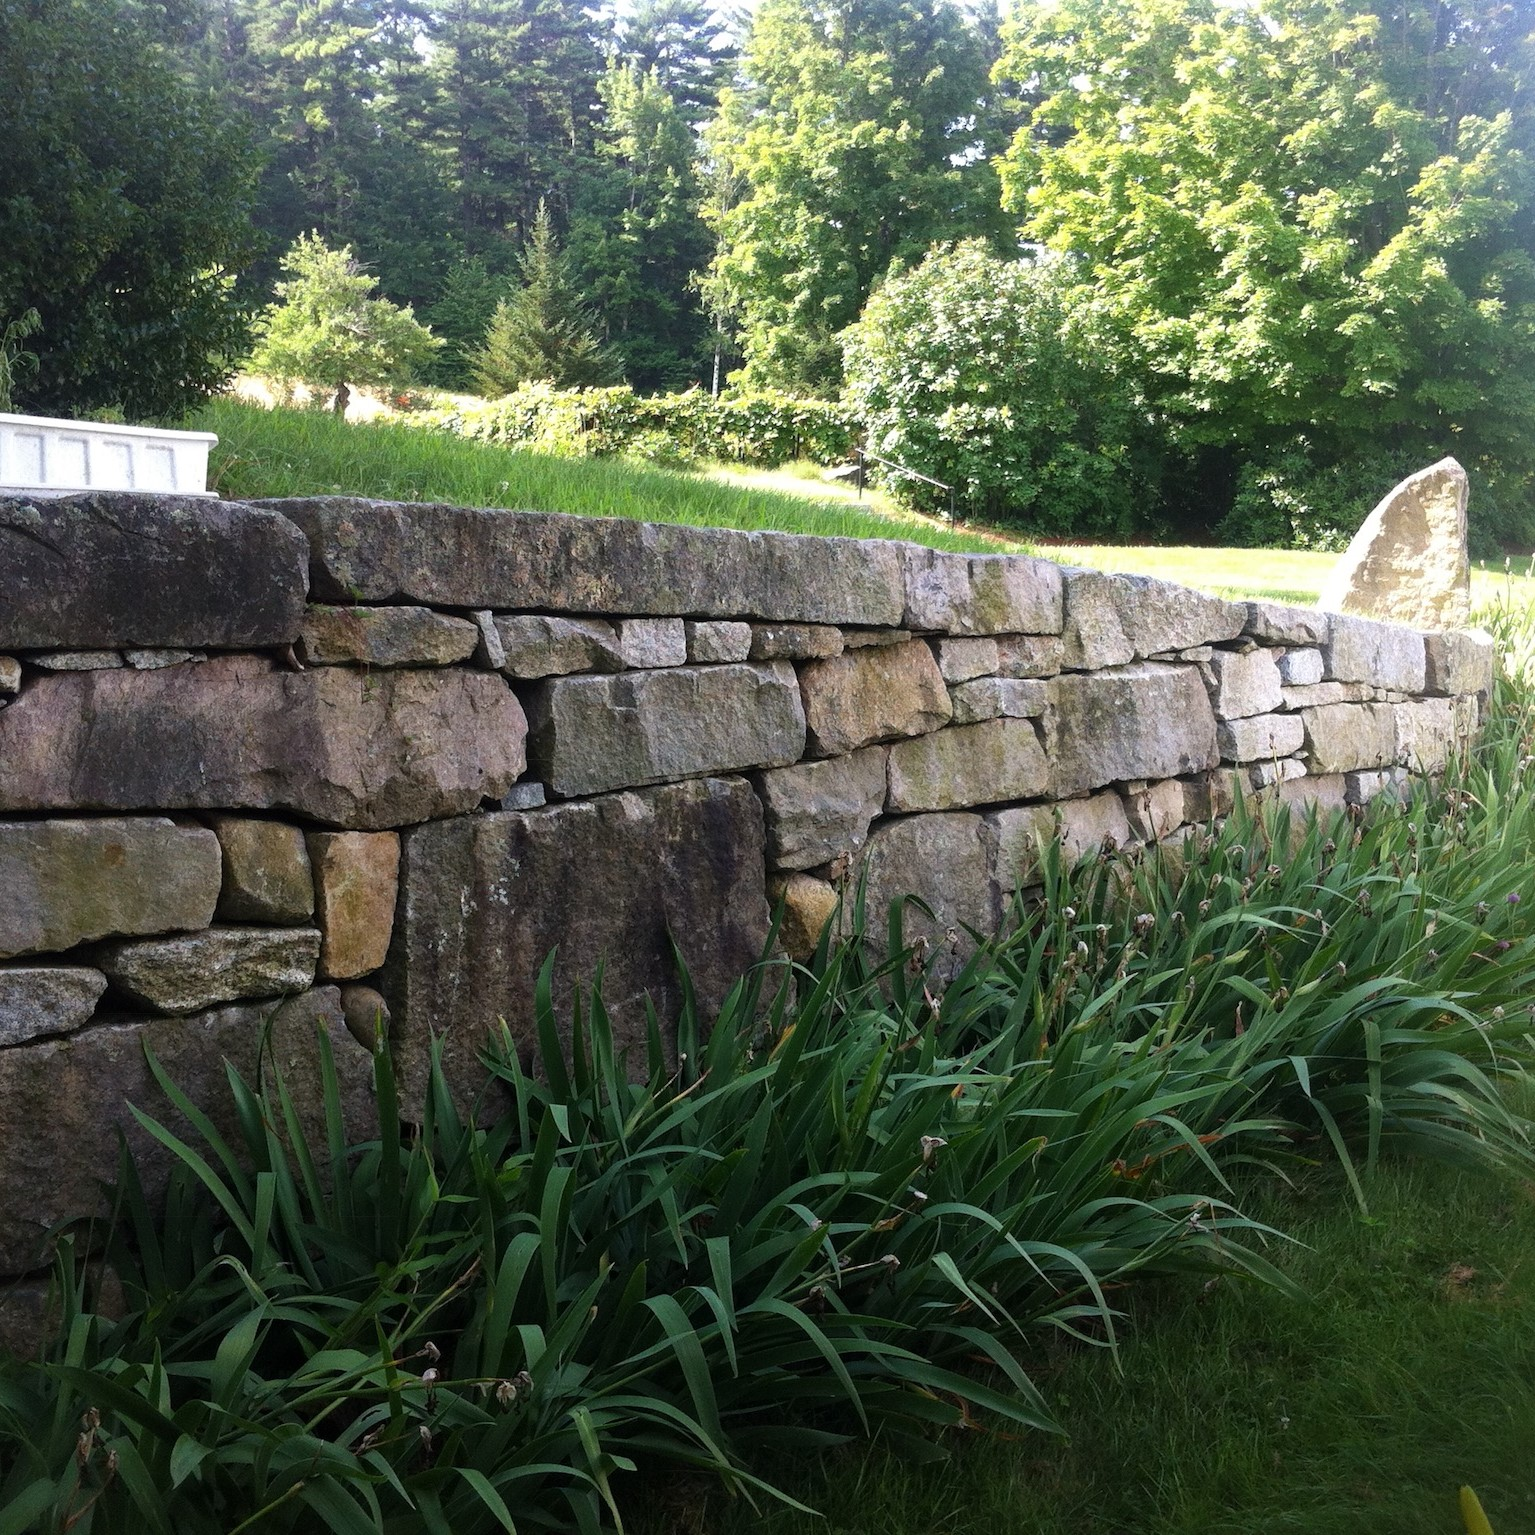 Stone Garden Wall Build in Brookline New Hampshire